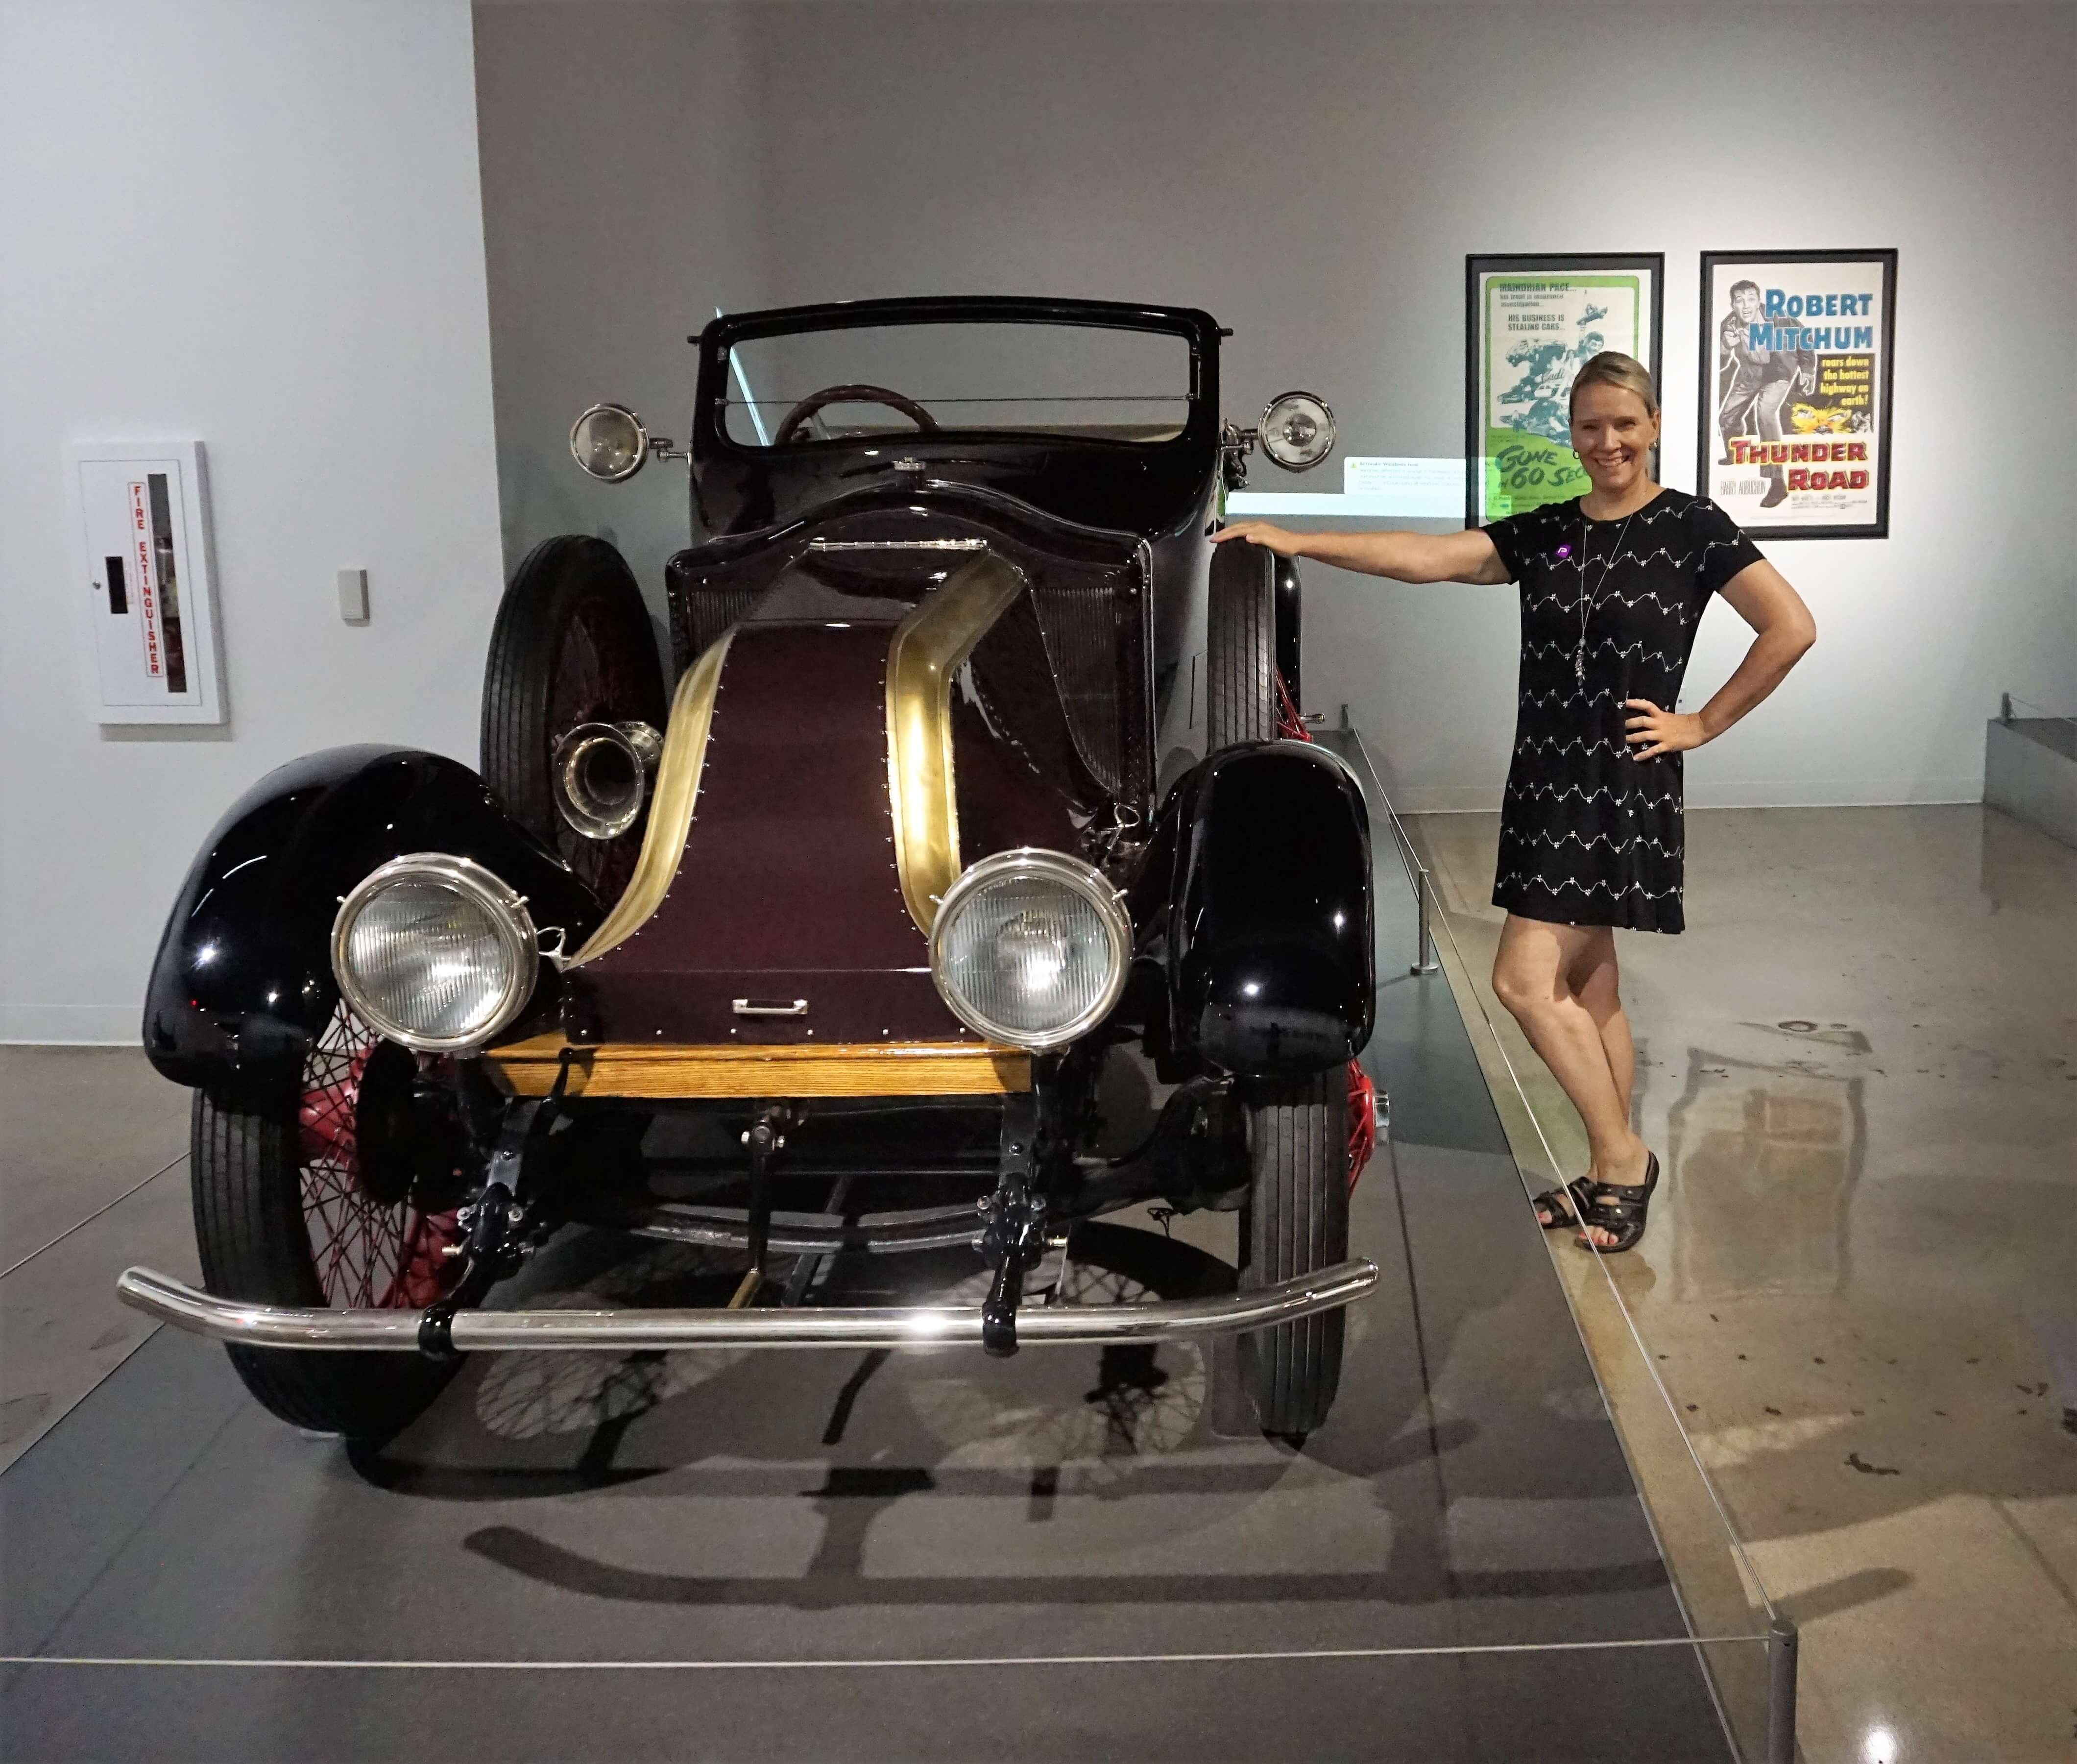 Wendy posing with one of the historic cars at The Petersen Automotive Museum